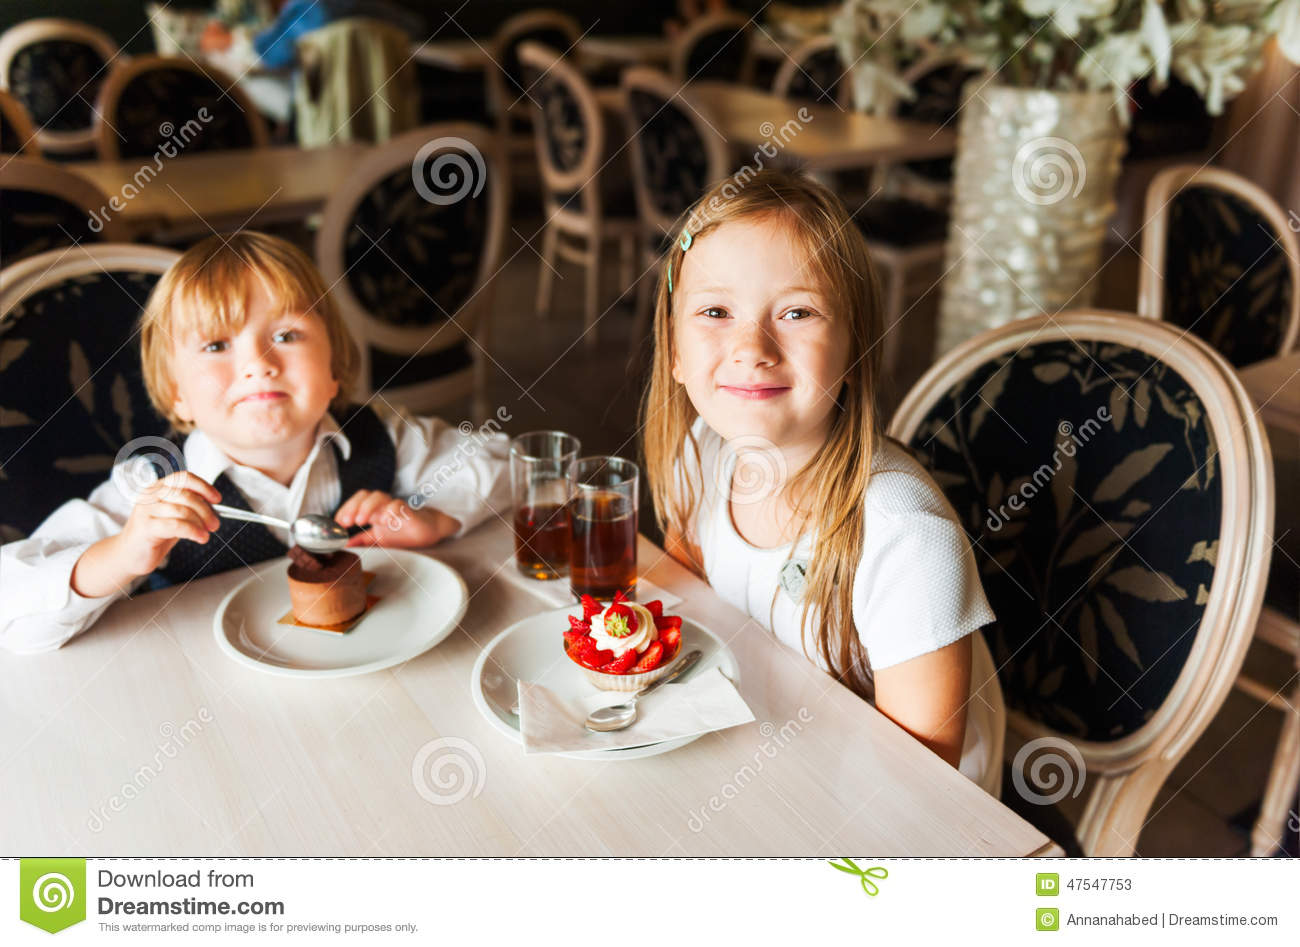 Kids in a cafe